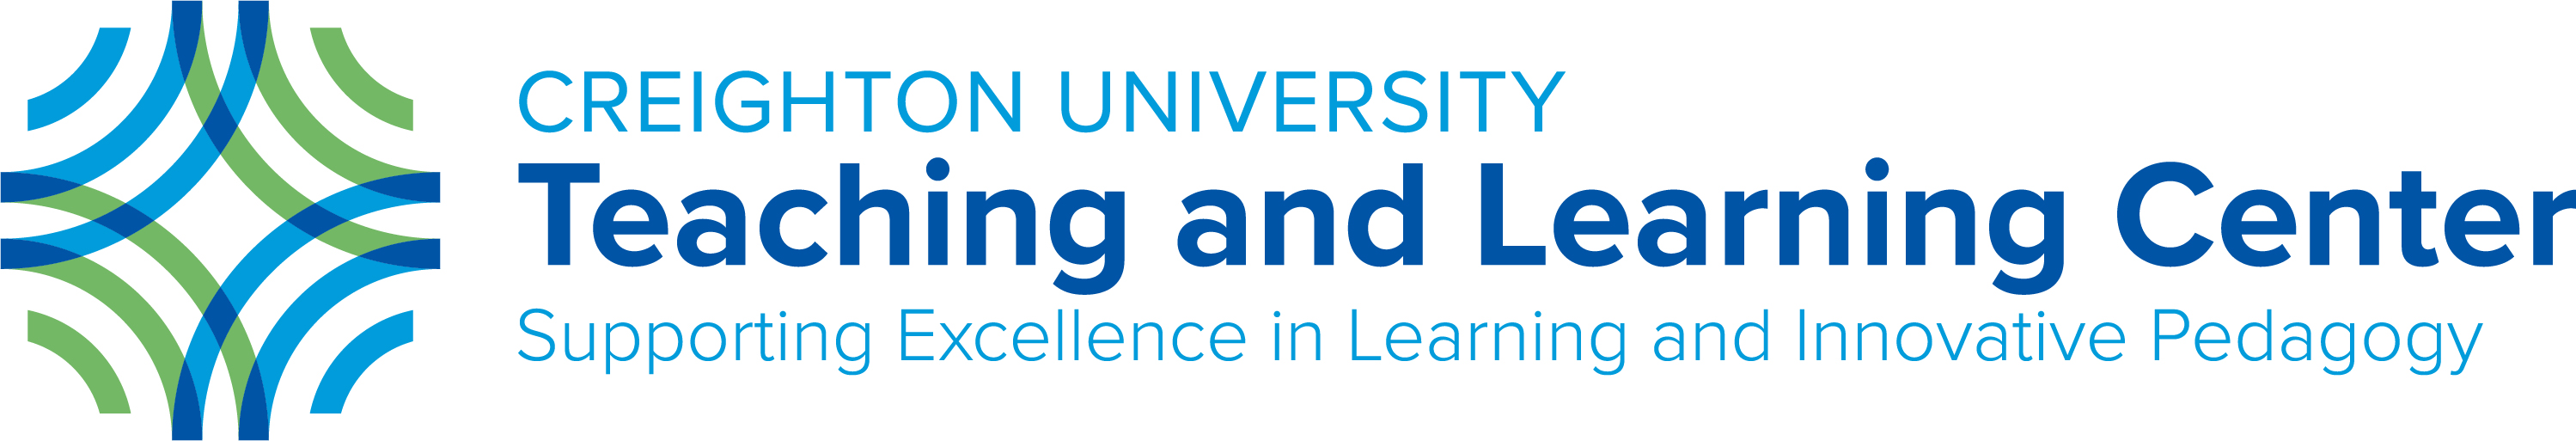 Teaching and Learning Center - Supporting Excellence in Learning and Innovative Pedagogy